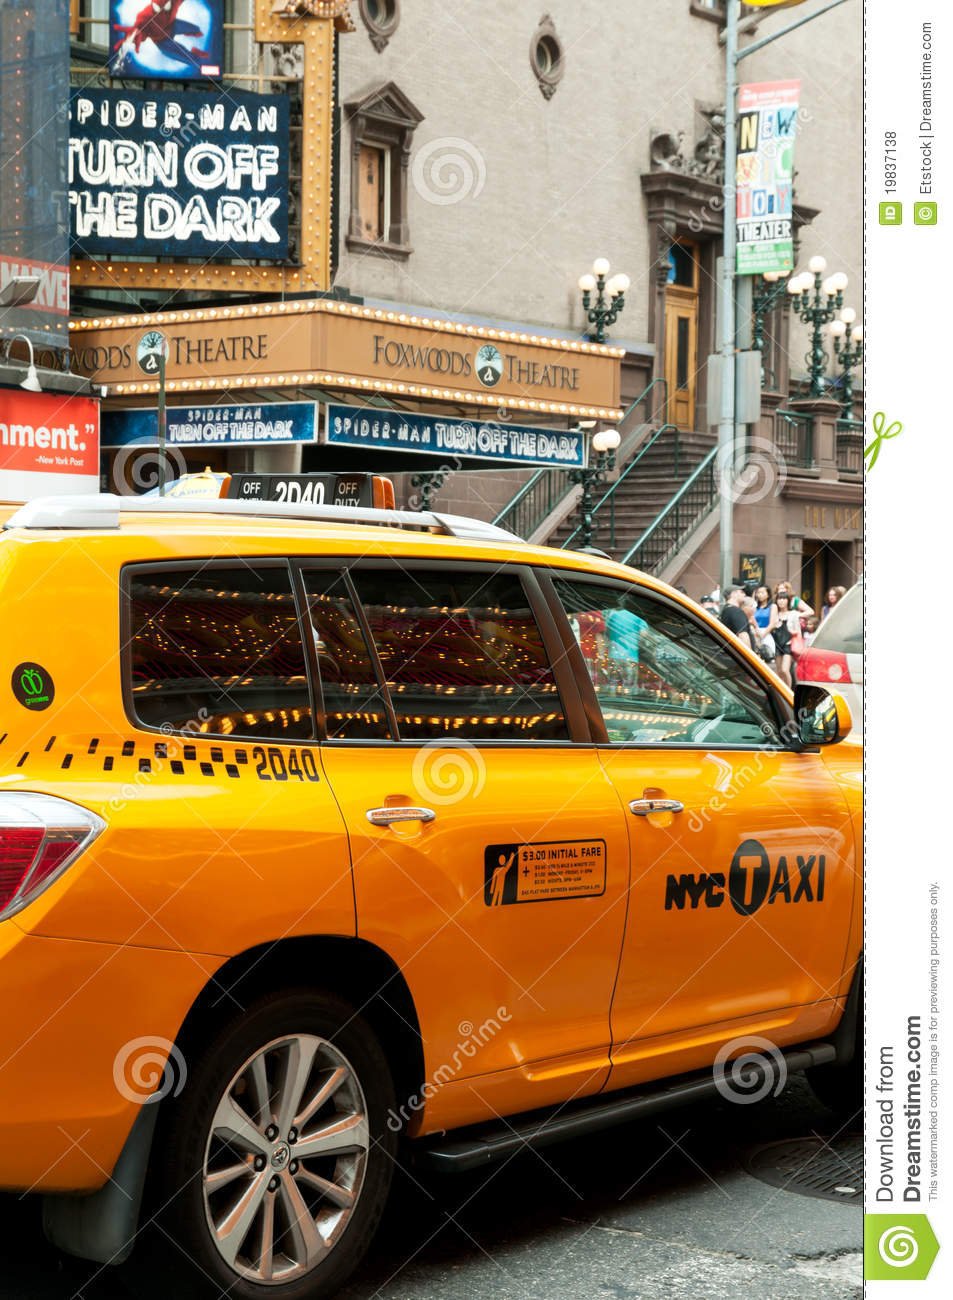 new york city taxi yellow cab editorial photo 23689837. Black Bedroom Furniture Sets. Home Design Ideas